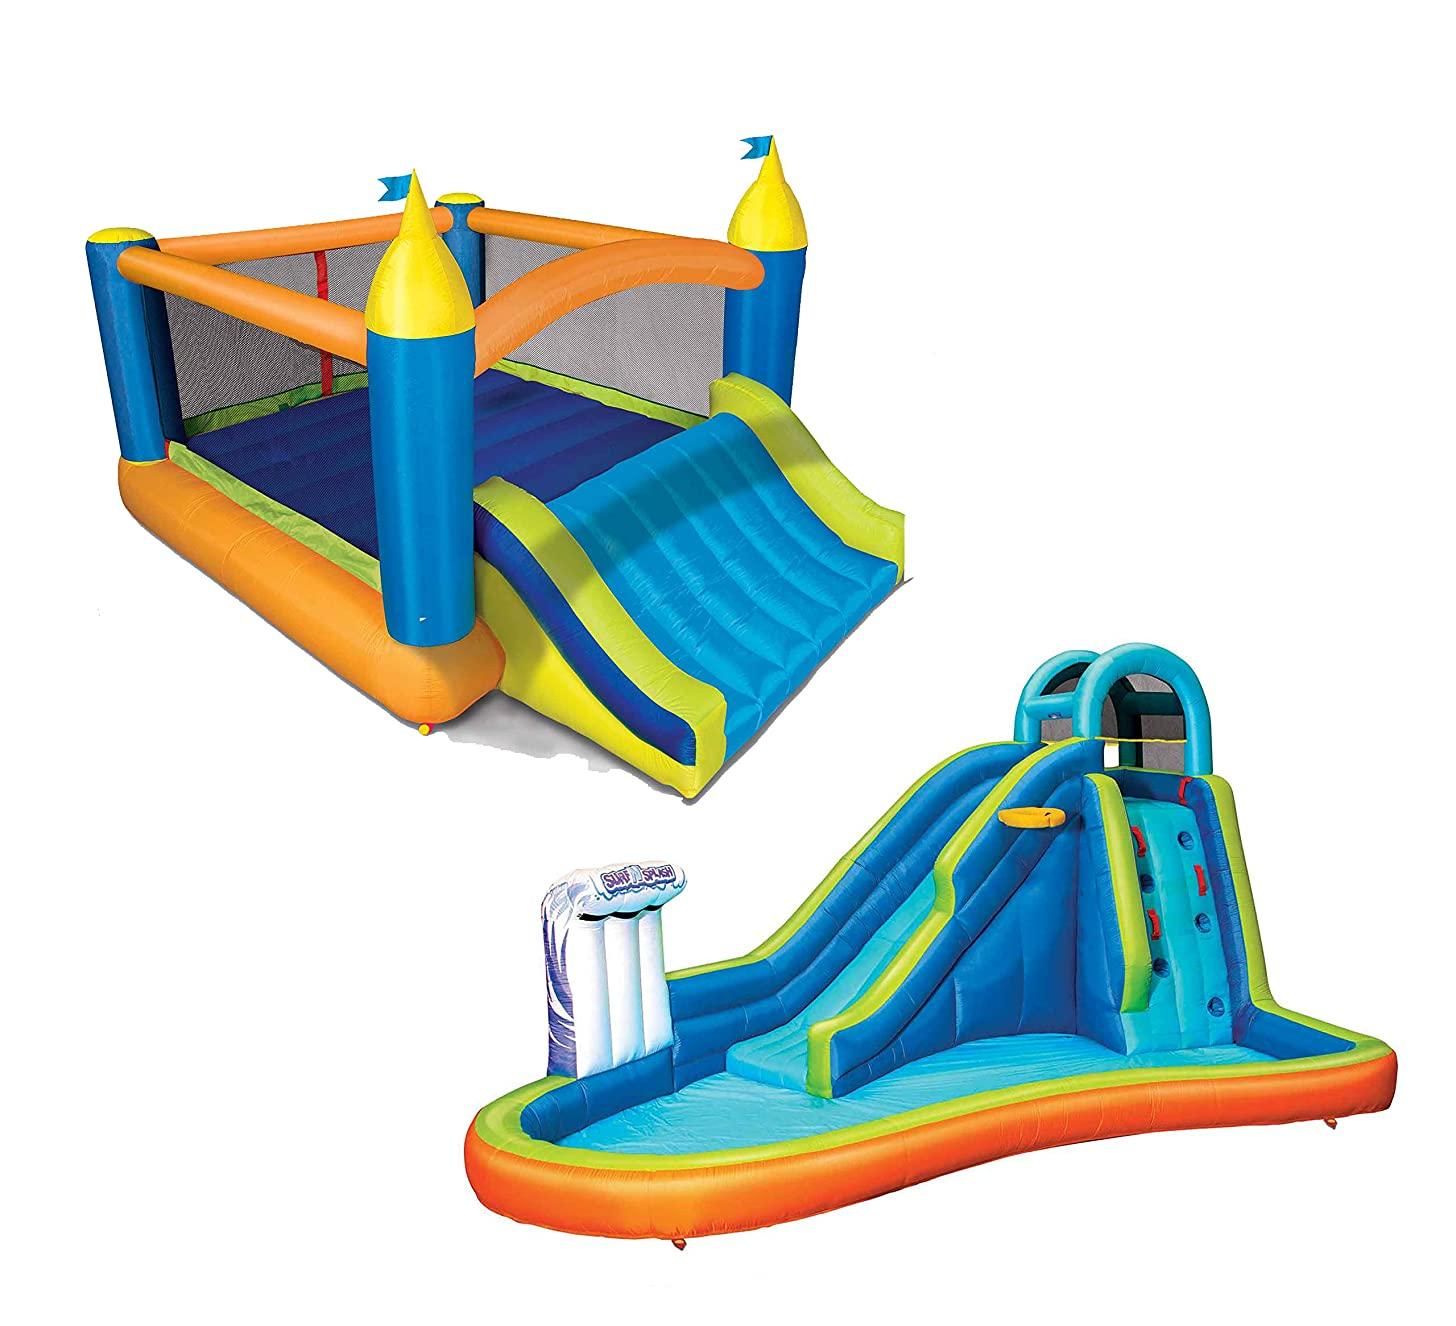 BANZAI Deluxe 2 in 1 Surf 'N Splash Water Park and Slide 'N Bounce House Combo